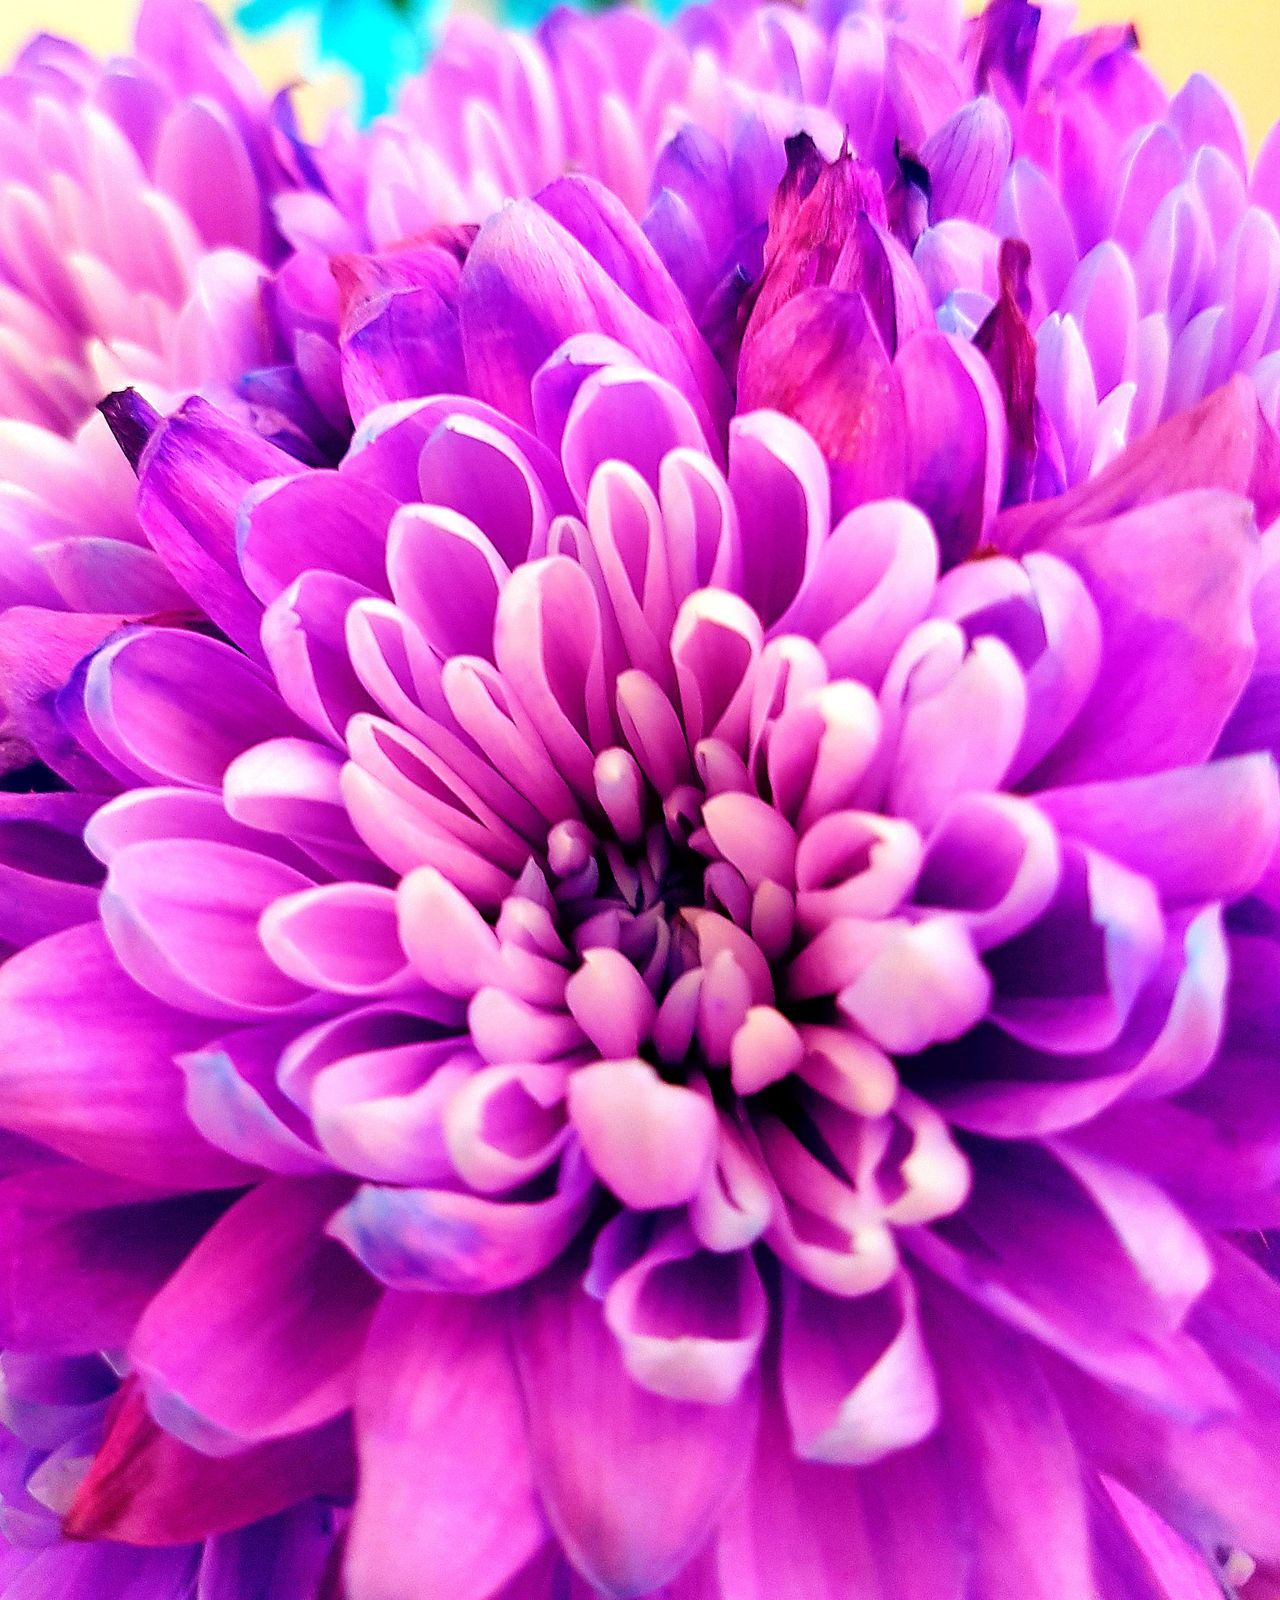 Flower Beauty In Nature Fragility Flower Head Petal Purple Freshness Nature Pink Color Close-up Growth Outdoors Day Plant No People Chrysanthemum Flower Photography Beautiful Flowers Purple Petals Pink-purple Flowering Branches Purple Flower Backgrounds Full Frame Colourful